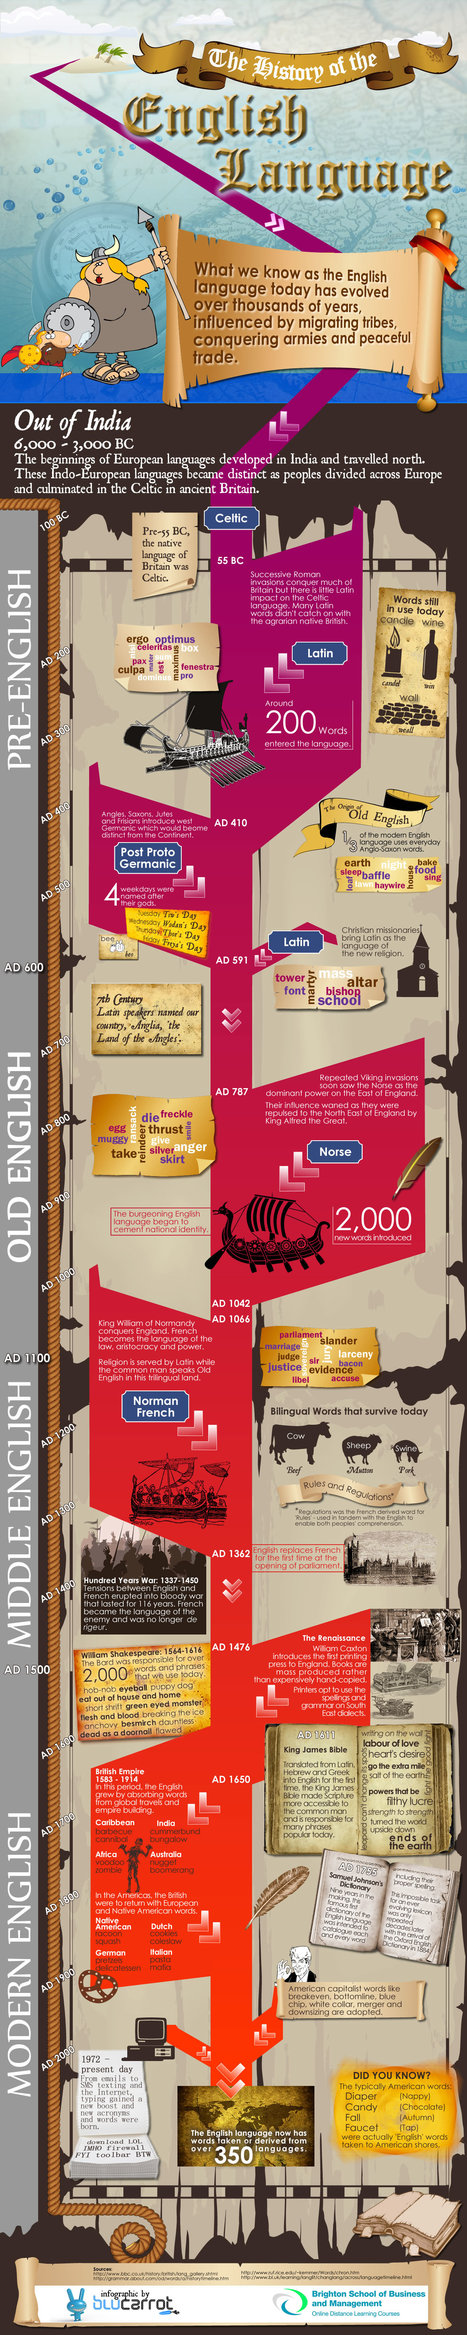 The History of the English Language | Infographic | Teaching (EFL & other teaching-learning related issues) | Scoop.it